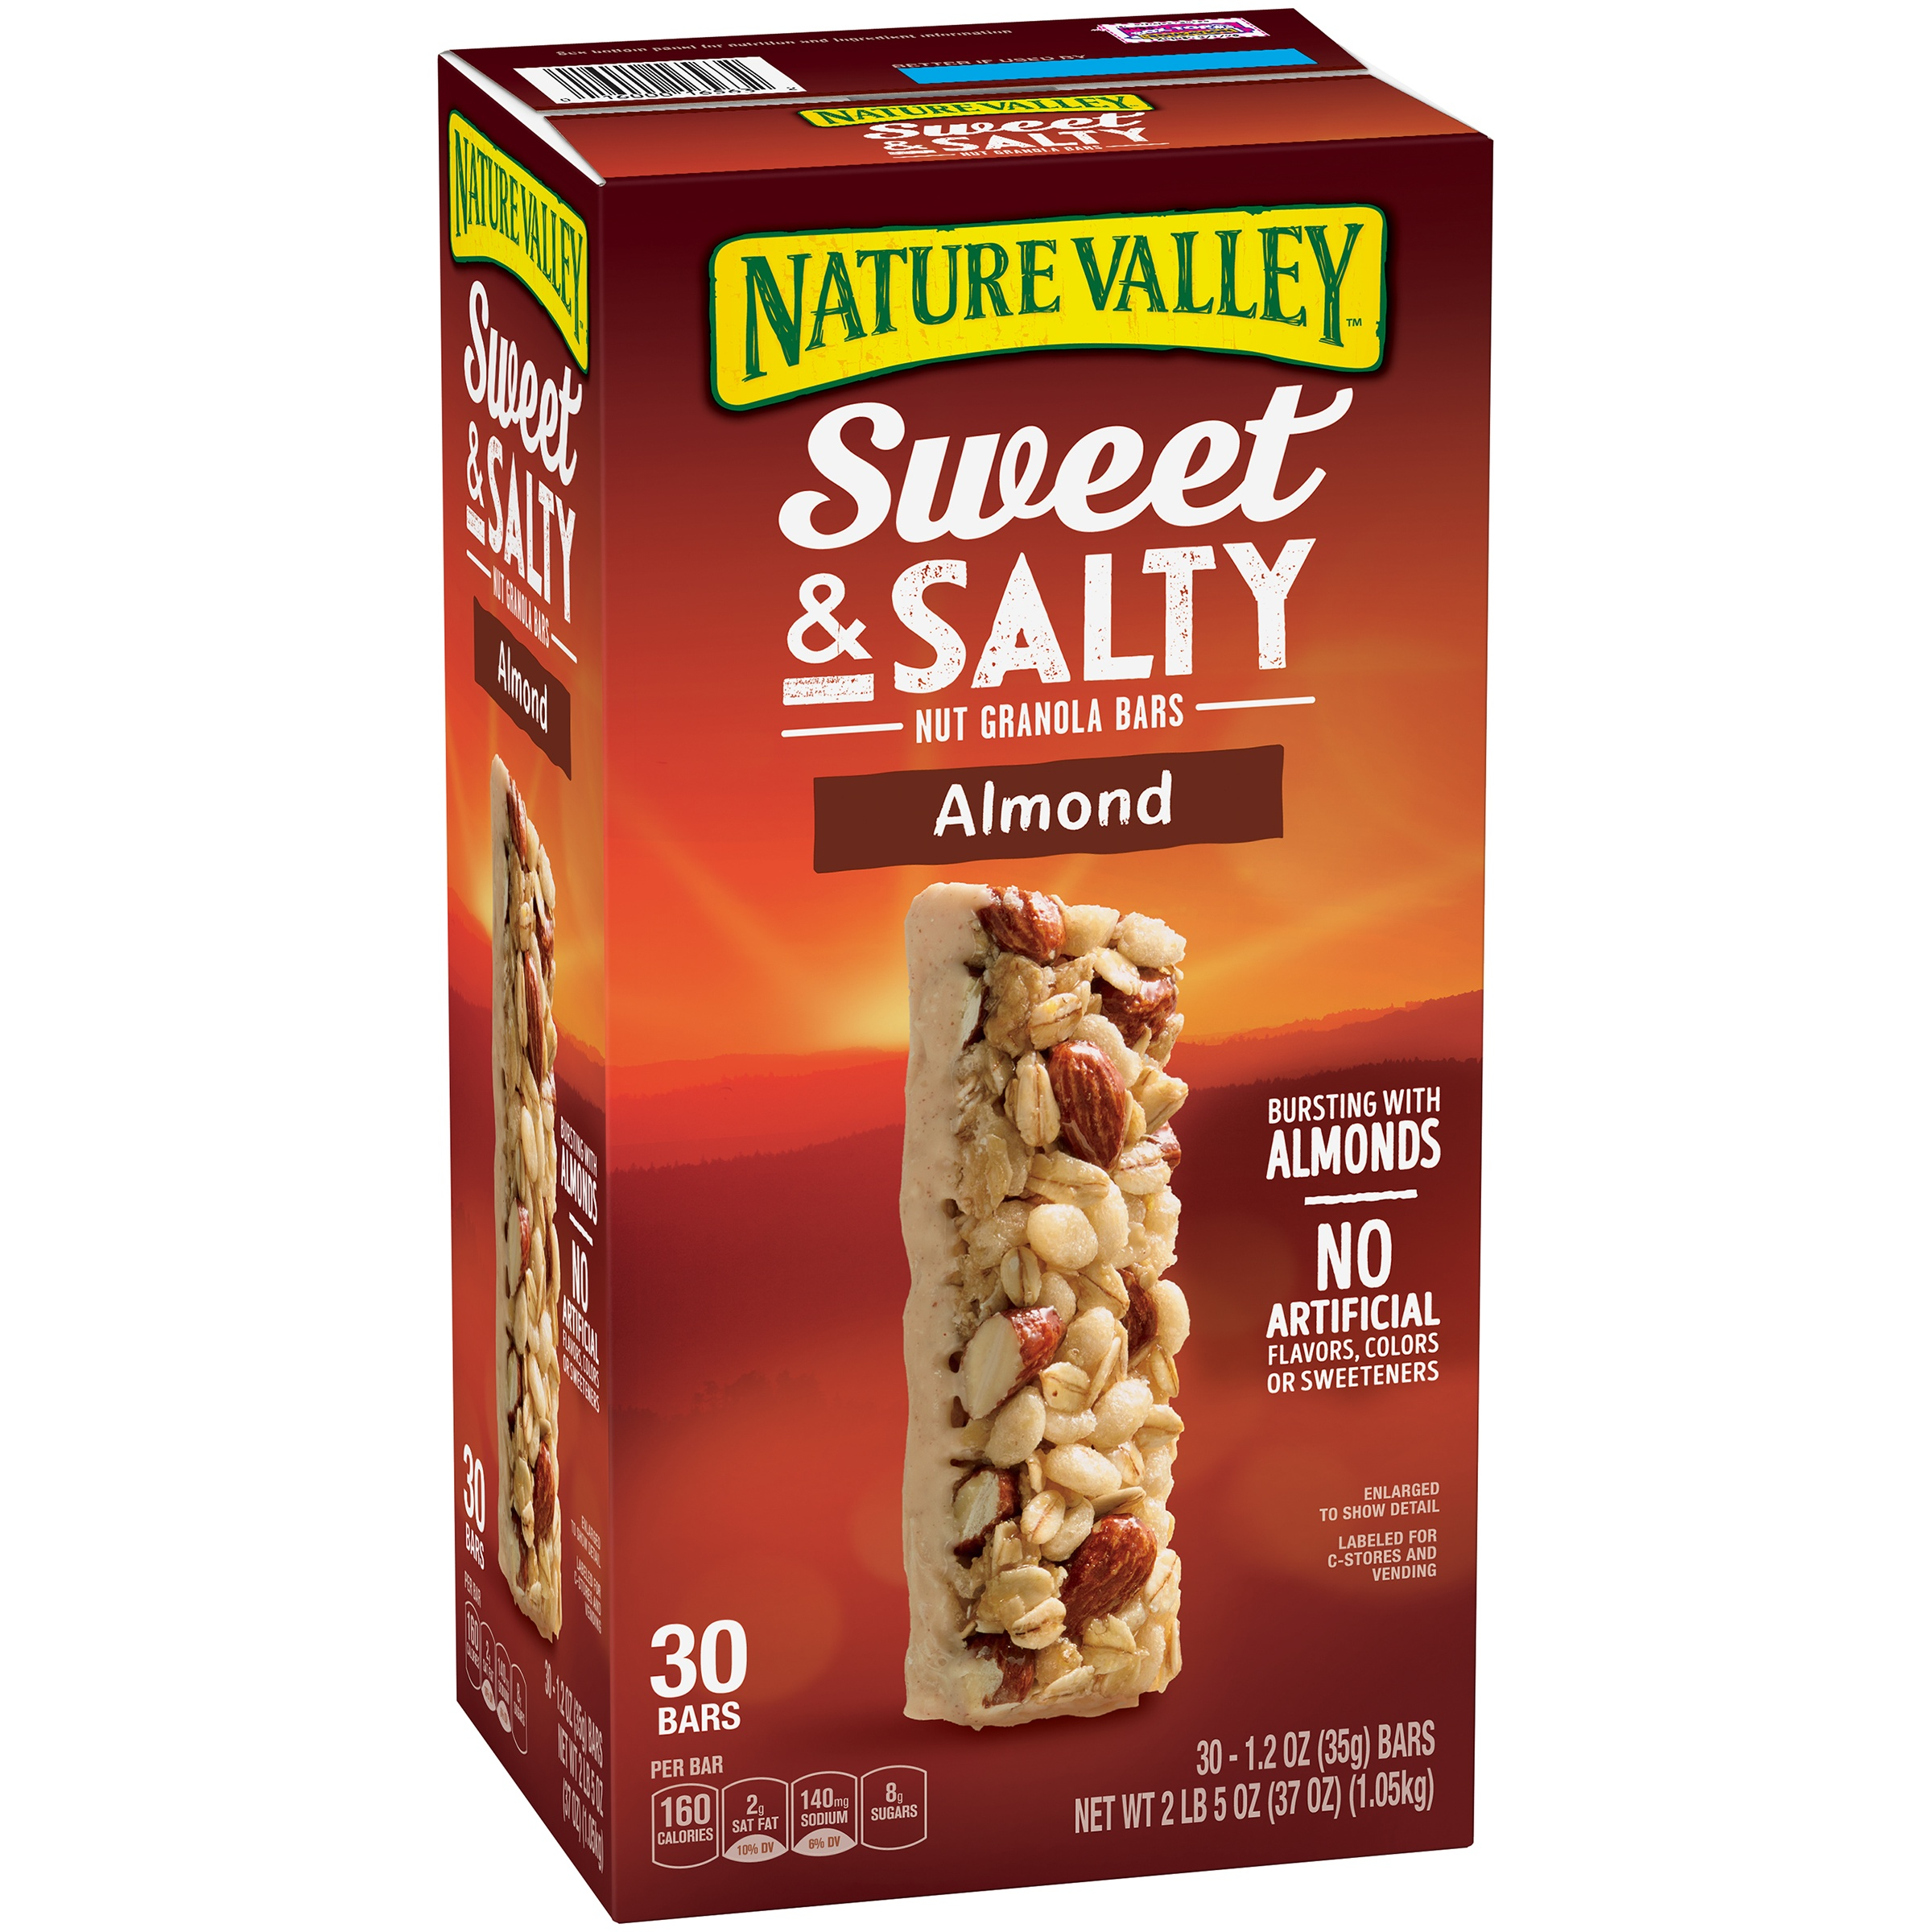 Nature Valley Almond Sweet and Salty Nut Granola Bars 1.2 oz. 30 Pack